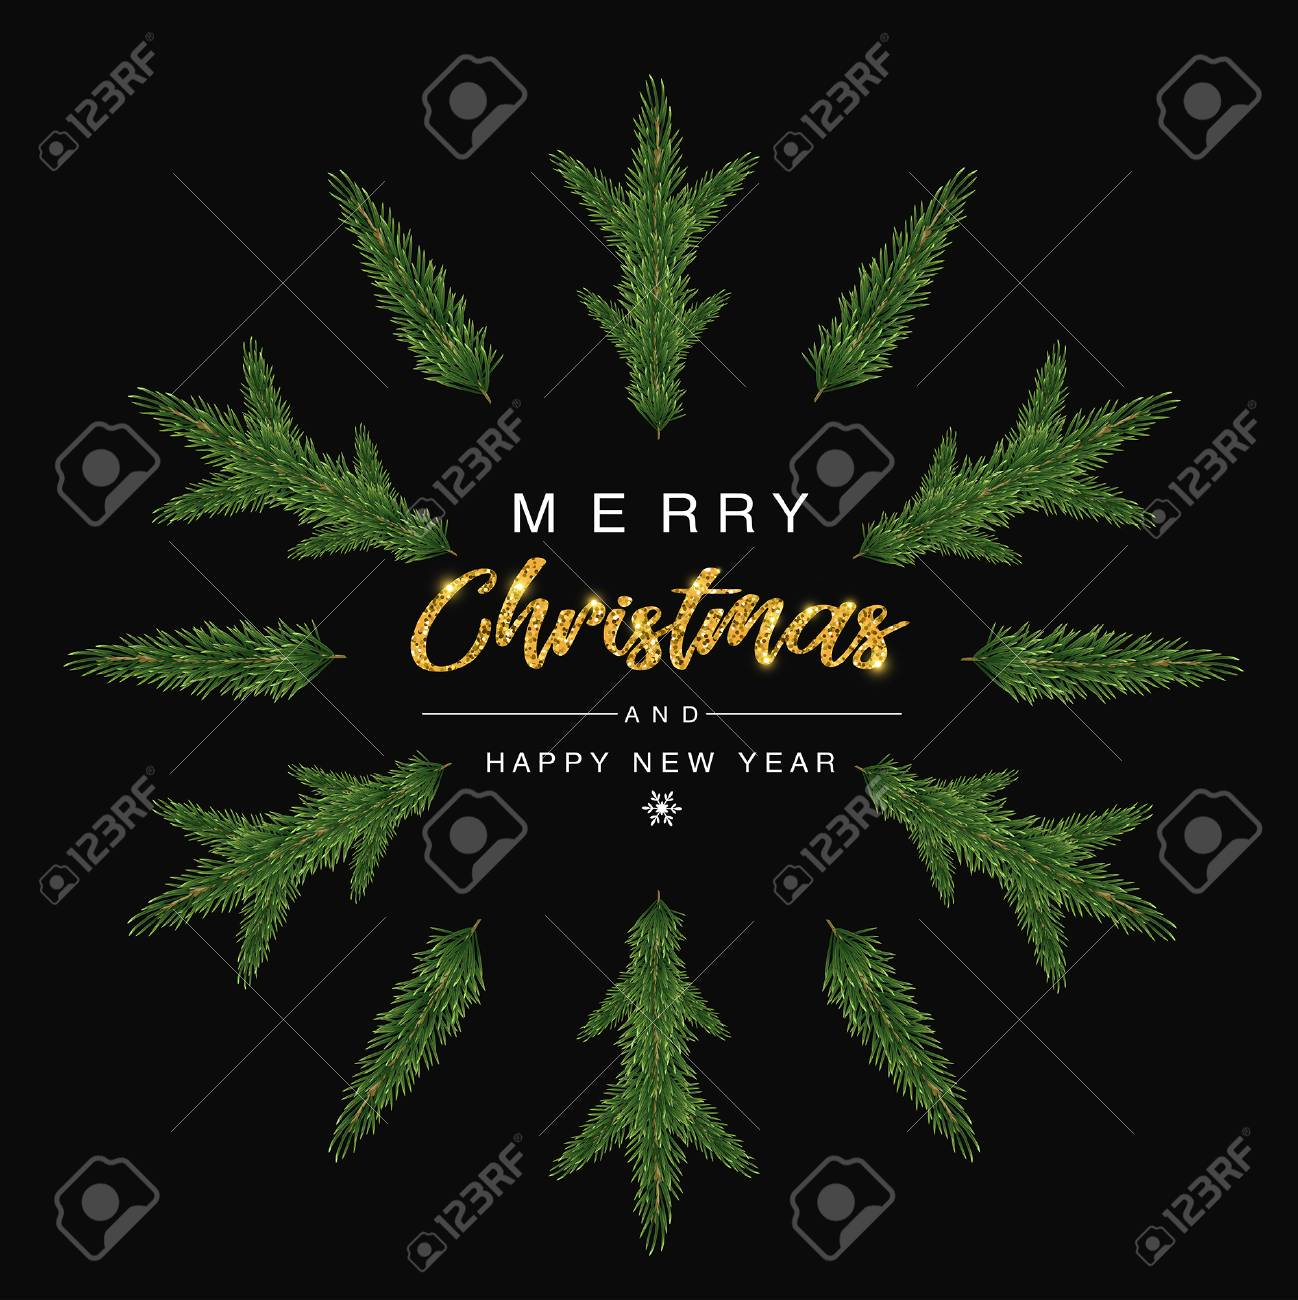 Merry Christmas and happy new year invitation Trendy with Christmas tree designs on snow flakes. Poster, card, label, banner design. Vector illustration. - 115109643